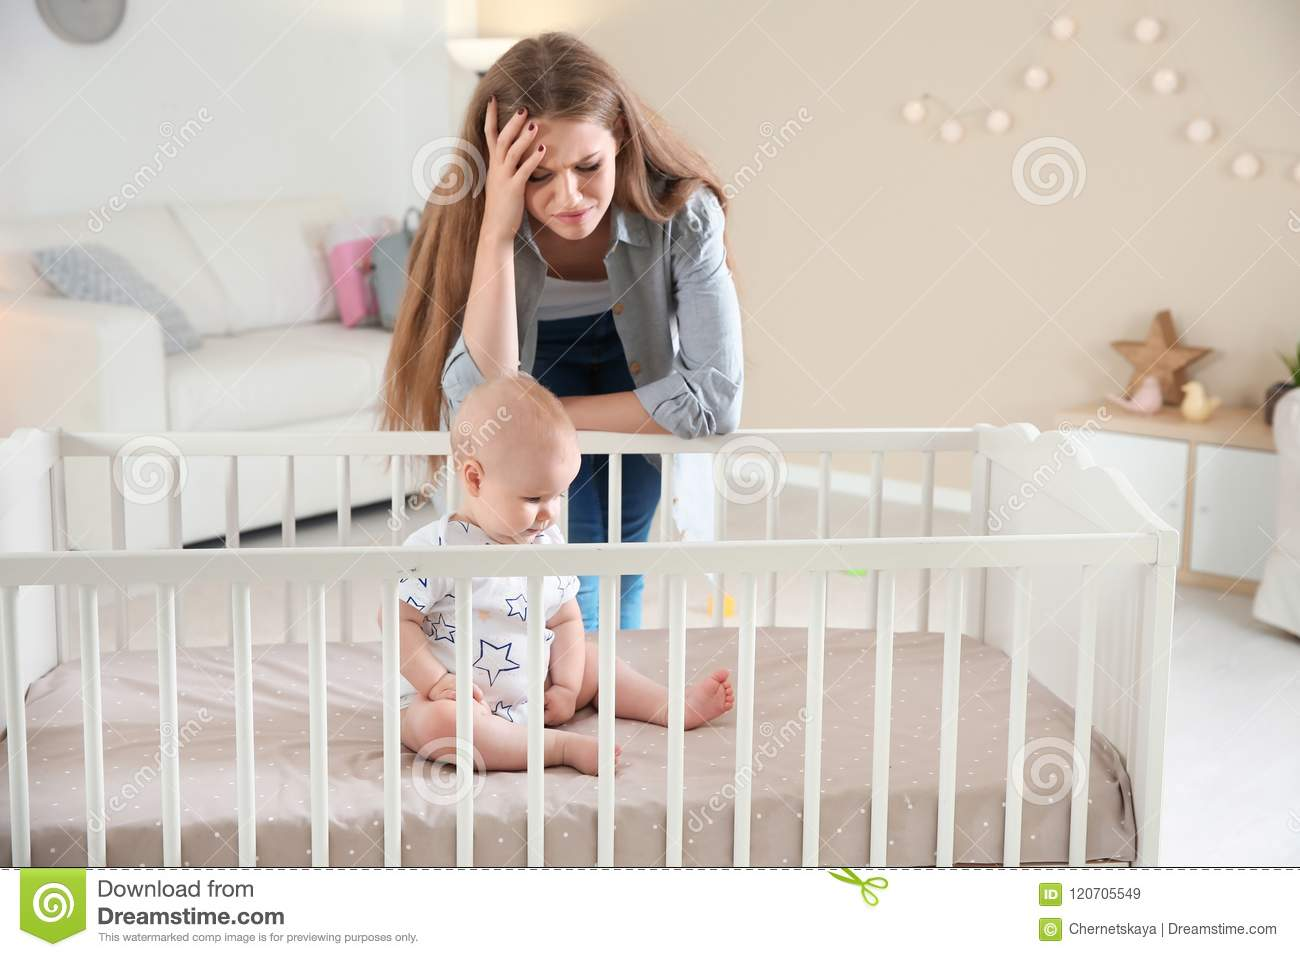 Cute baby girl in crib and young mother